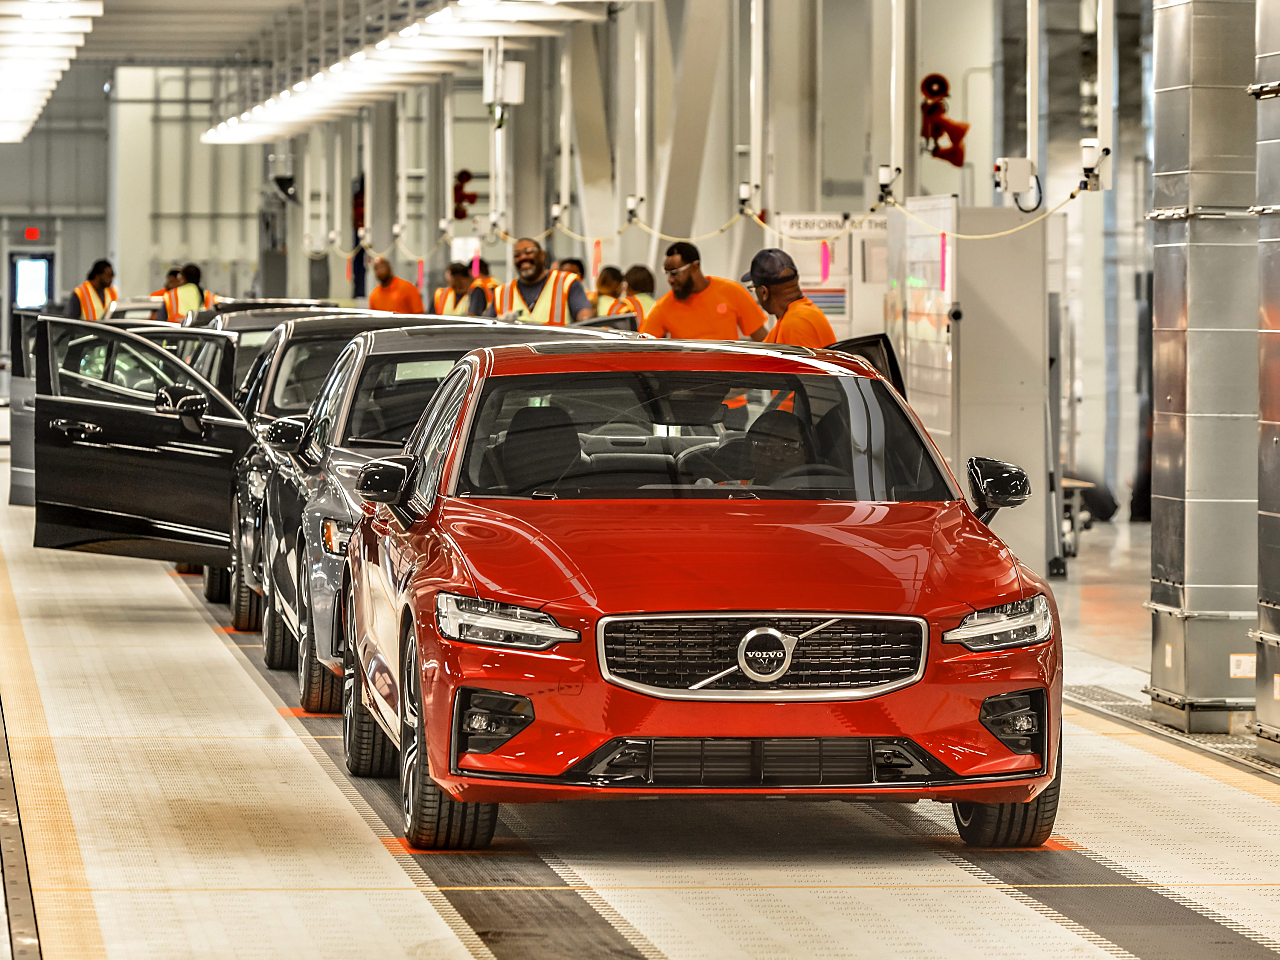 2019 S60 Sedan: First Volvo Built in U.S.